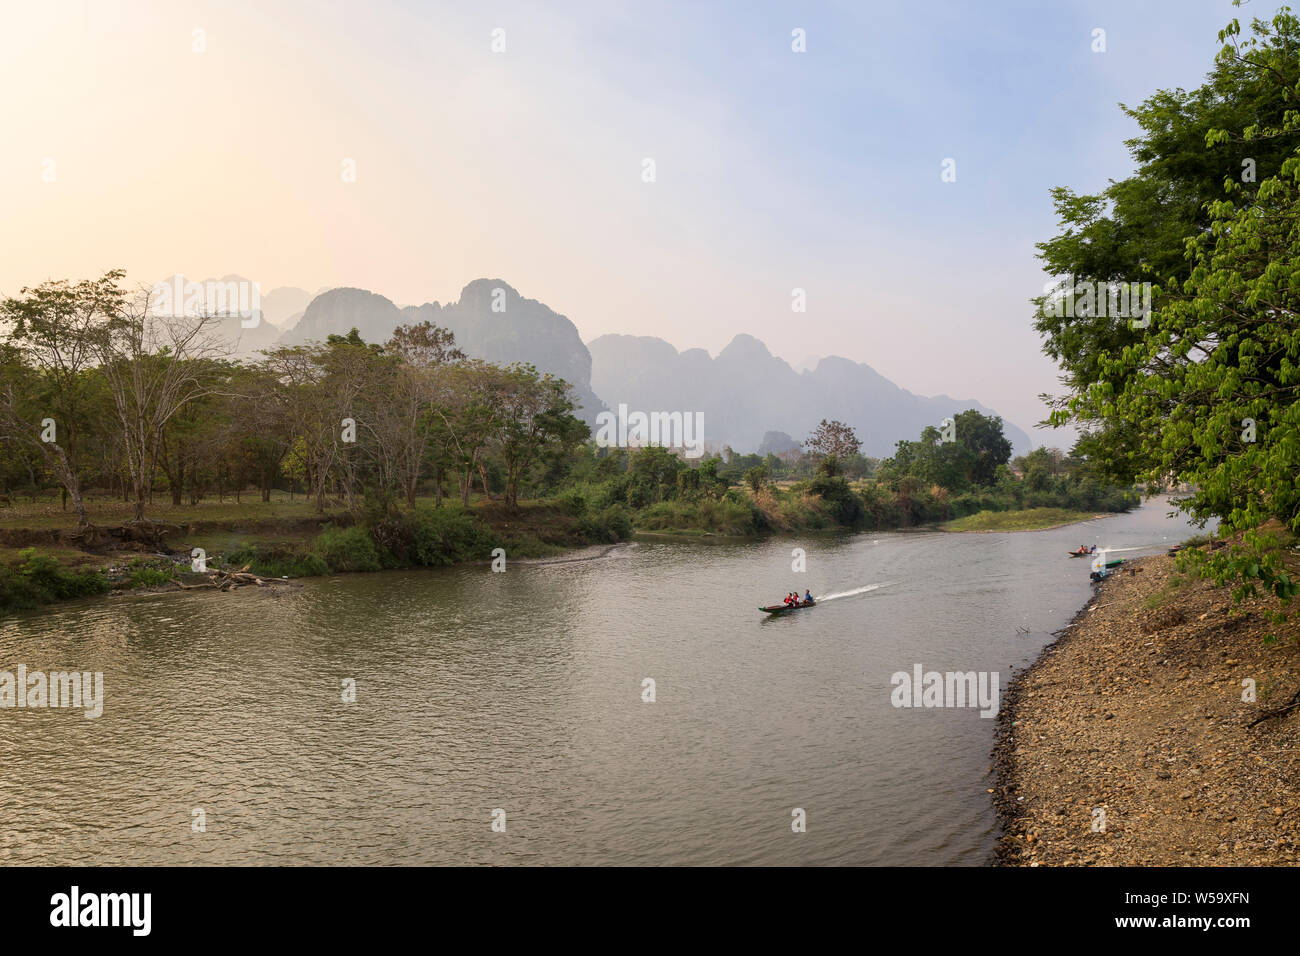 View of two small boats on the Nam Song River and limestone karst mountains in Vang Vieng, Laos. Stock Photo